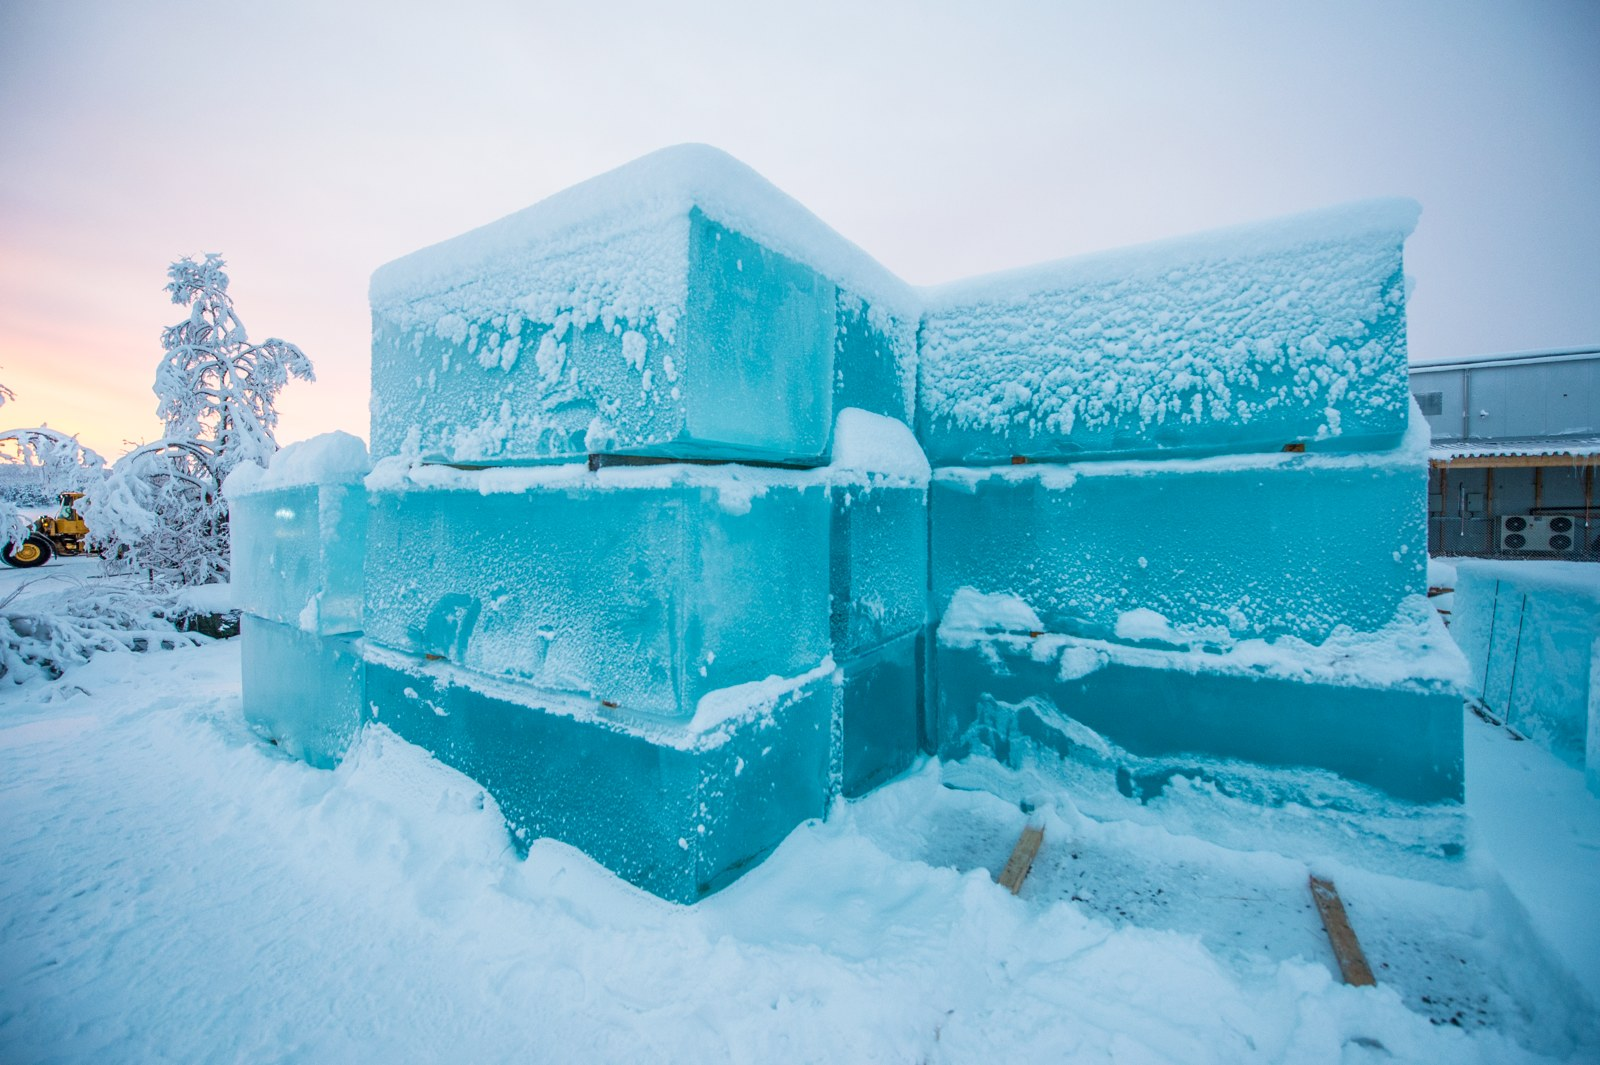 Building a hotel of ice